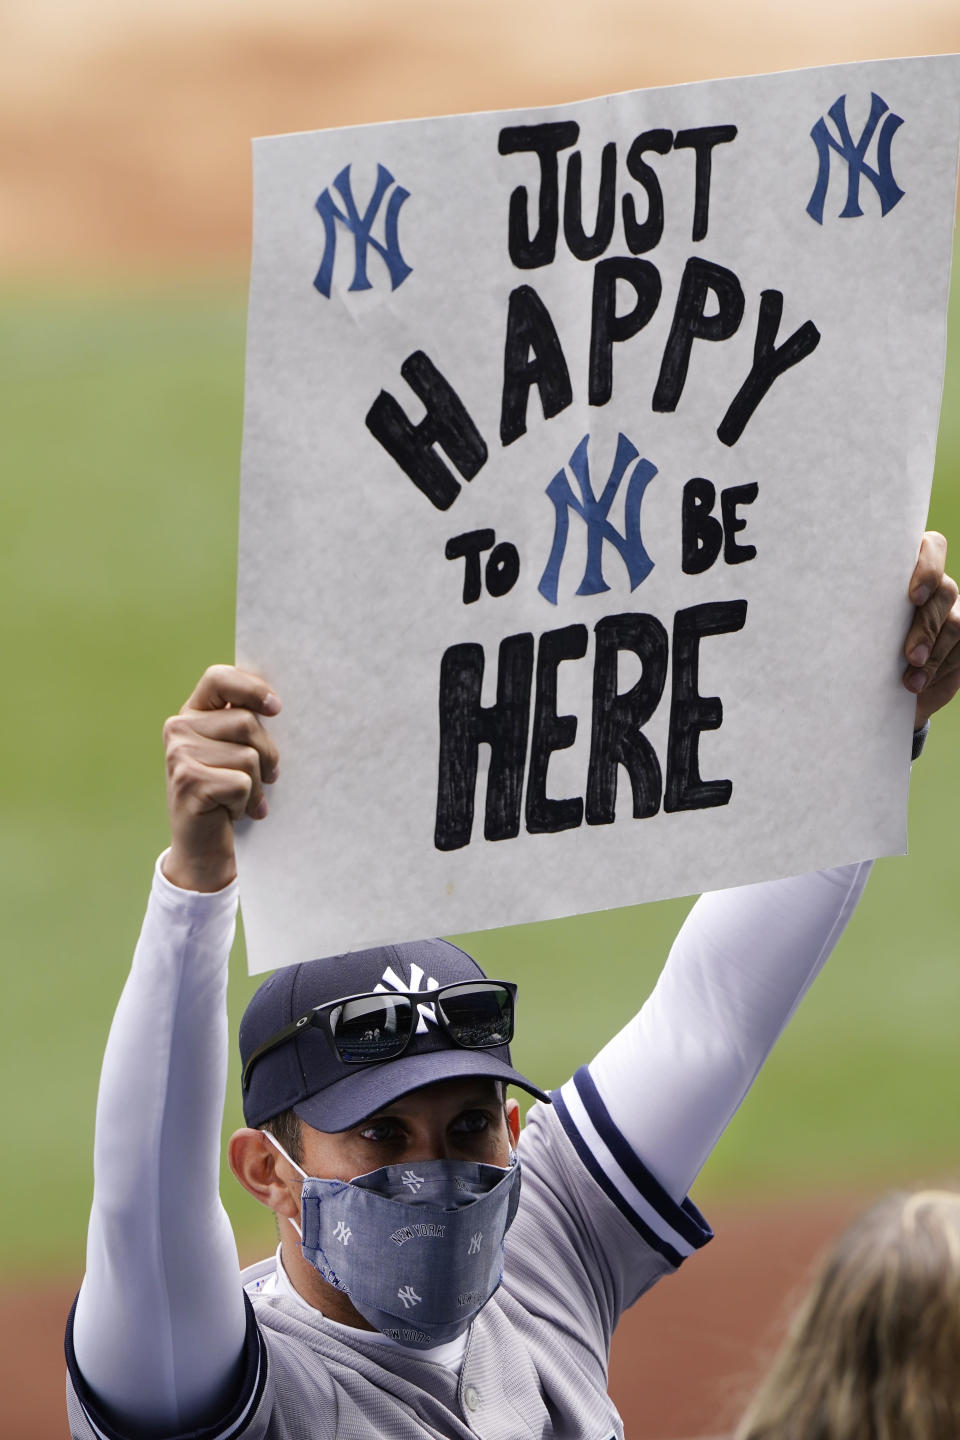 A fan holds a sign expressing his joy at being able to attend a major league baseball game between the New York Yankees and the Toronto Blue Jays on opening day at Yankee Stadium, Thursday, April 1, 2021, in New York. (AP Photo/Kathy Willens)